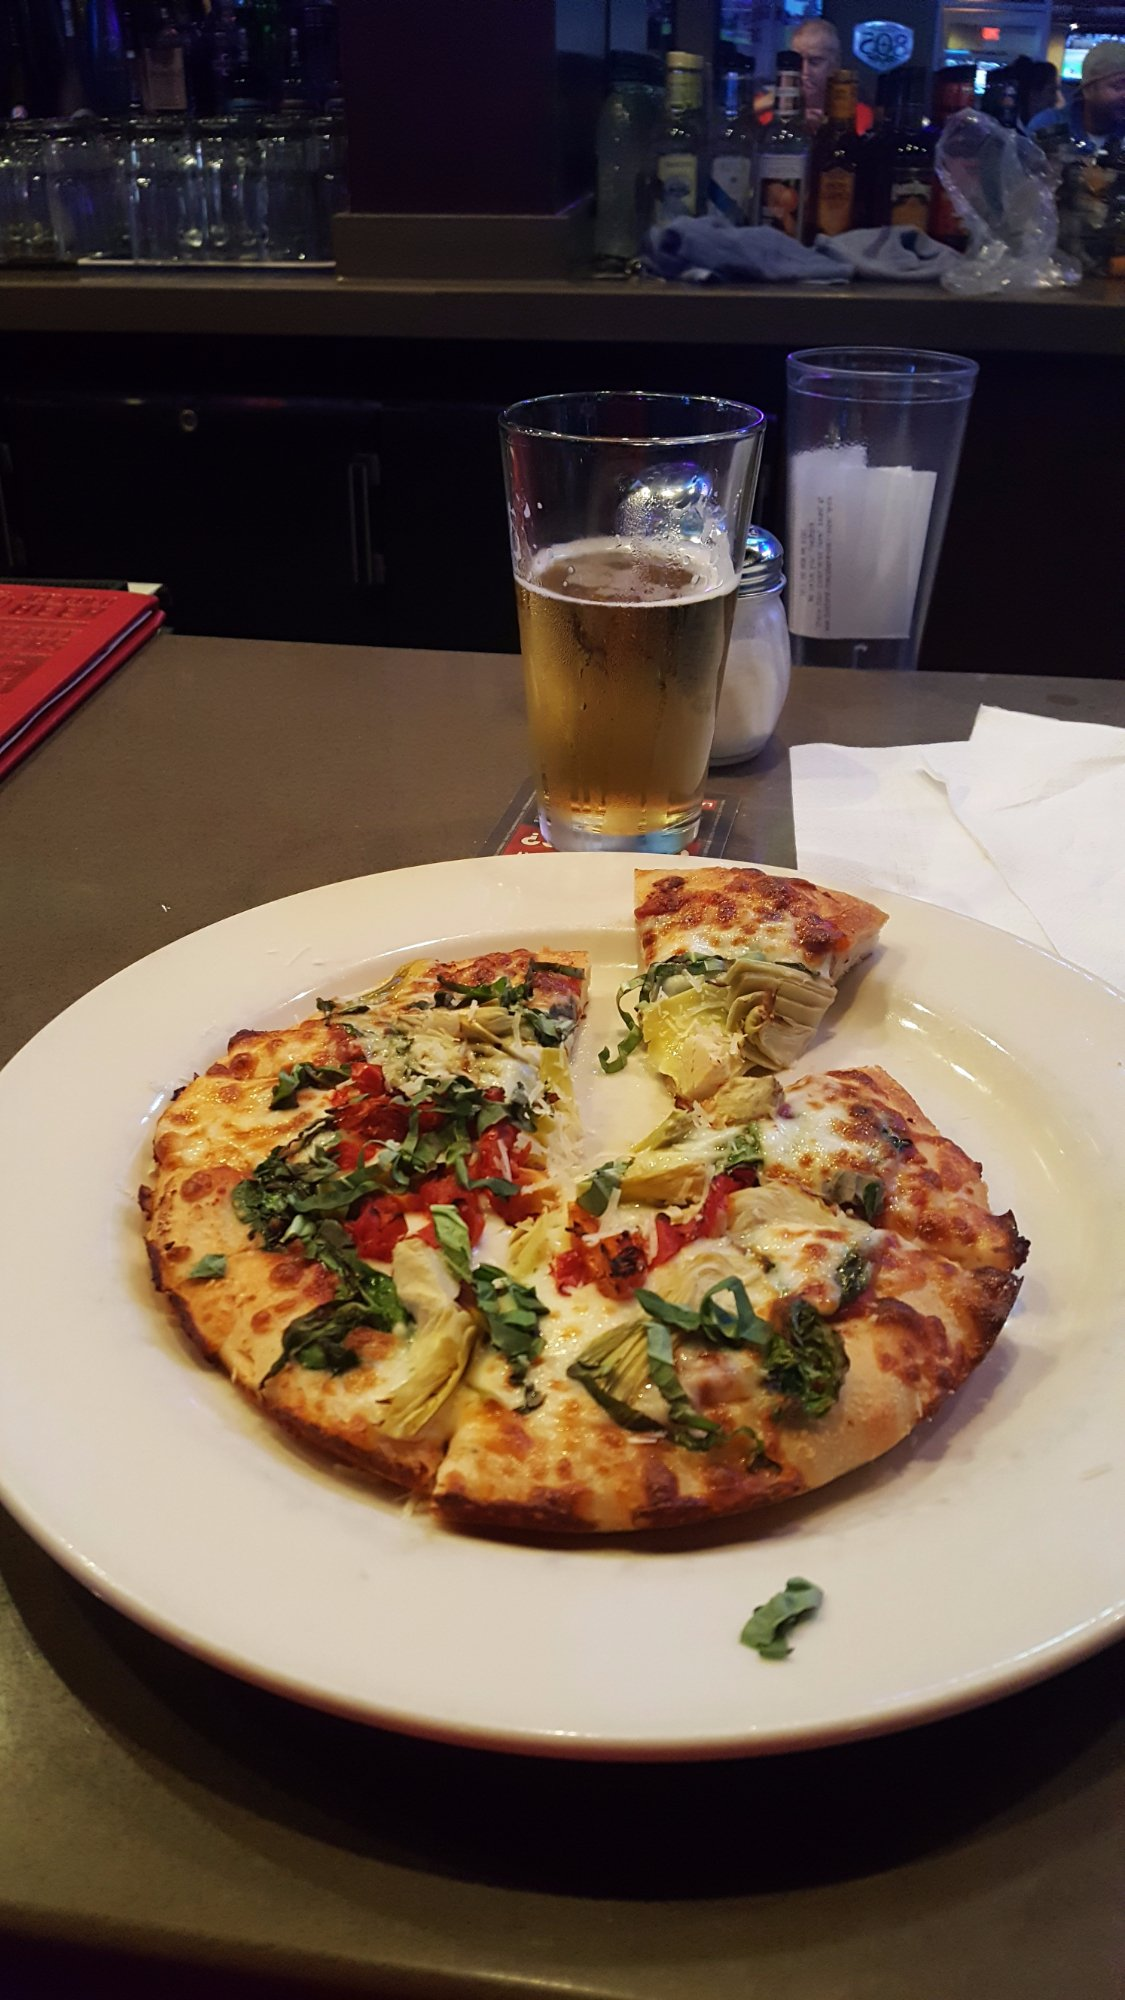 Veggie pizza and brewski